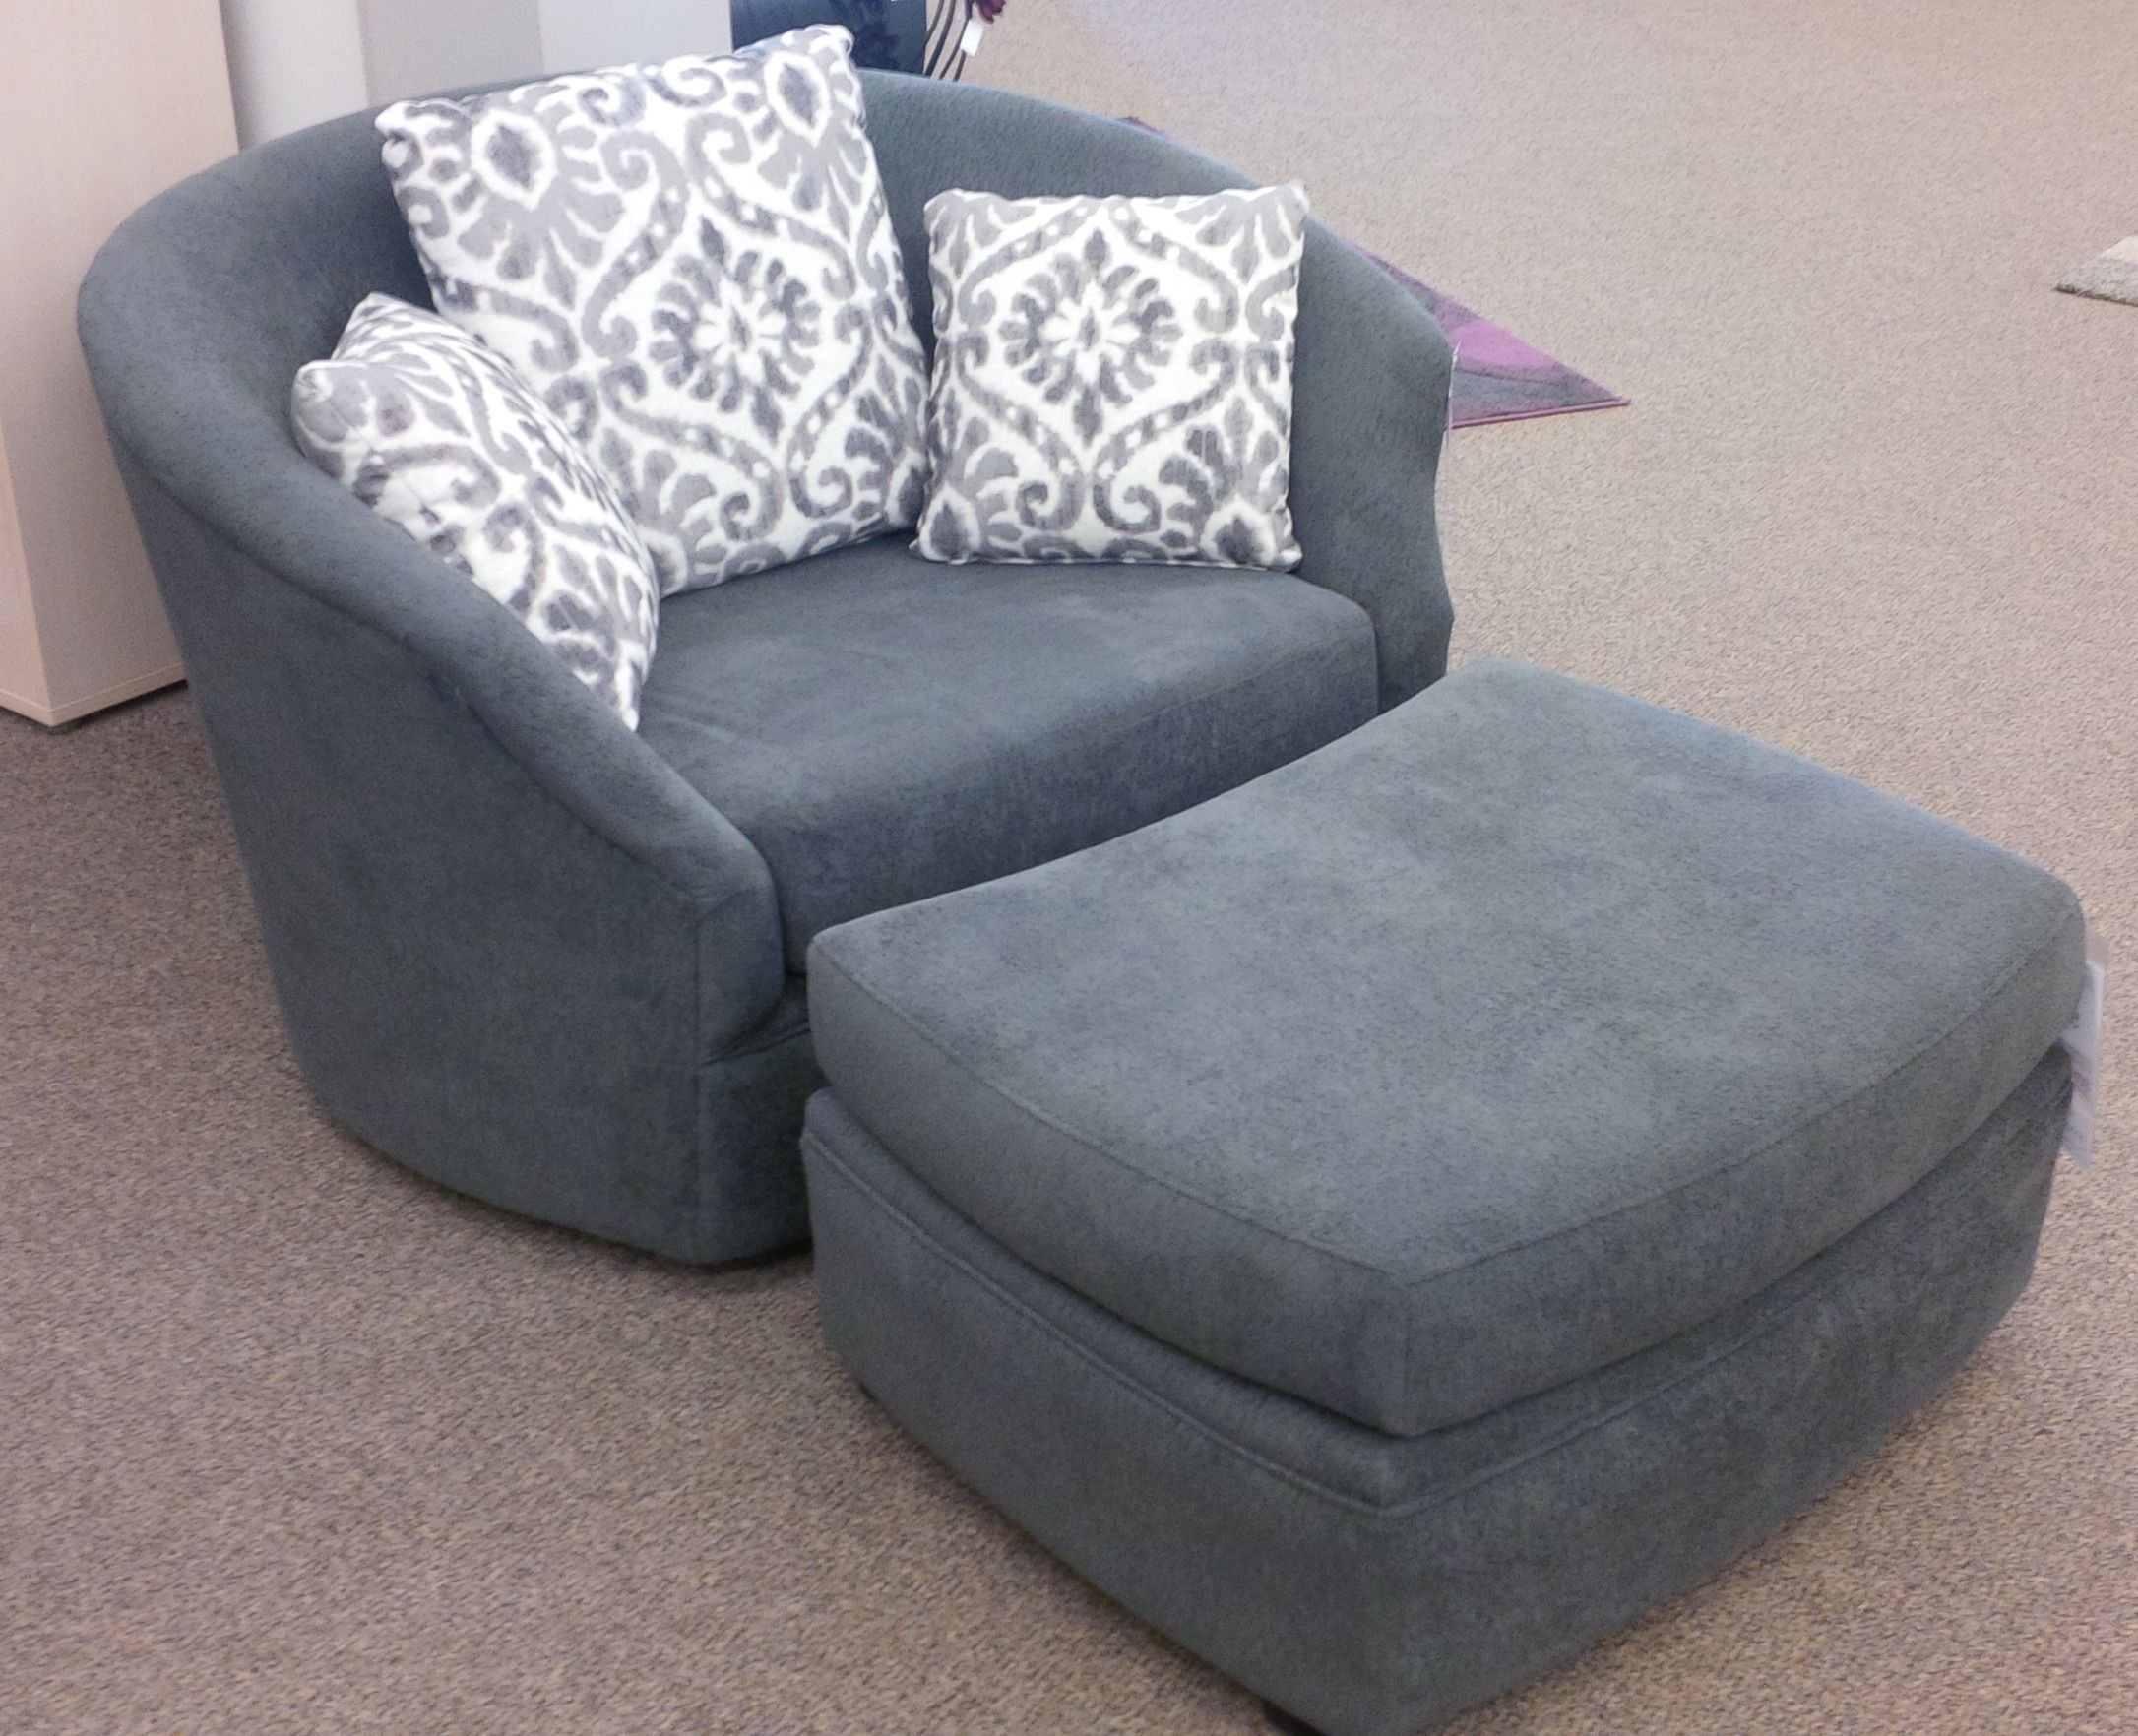 Comfy Chair And Ottoman Lycra Covers Hire Brisbane Wouldnt You Love To Curl Up In This Big Its